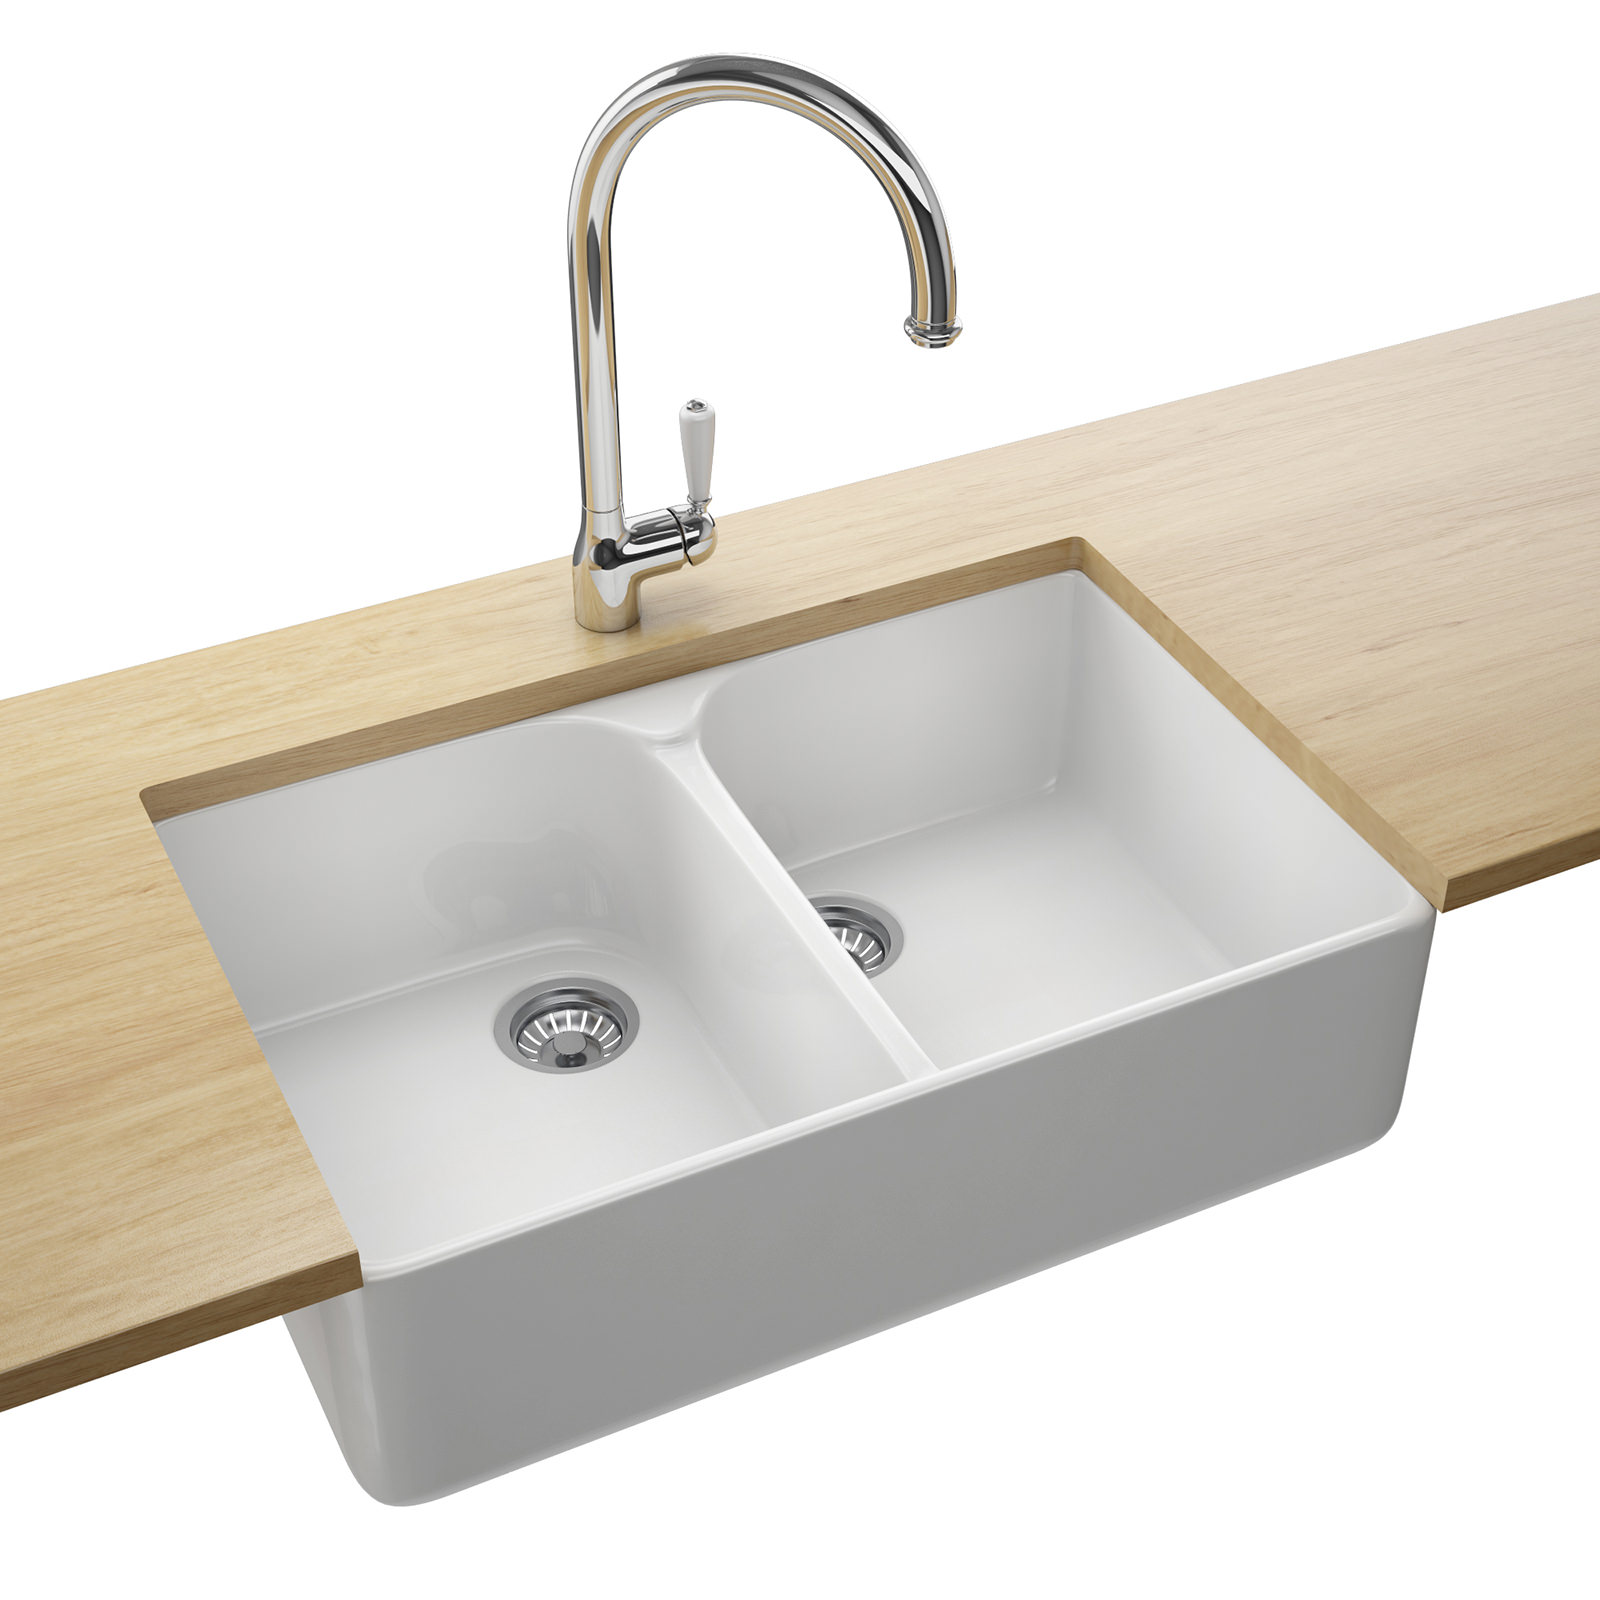 kitchen sink ceramic with 7260 on 3666 furthermore Bathroom Faucets For Granite Countertops further Modern Ceramic Tile Designs likewise Fabulous Small Kitchen Remodel Pictures On Kitchen Remodeling Ideas likewise 14 Luxury Small But Functional Bathroom Design Ideas.